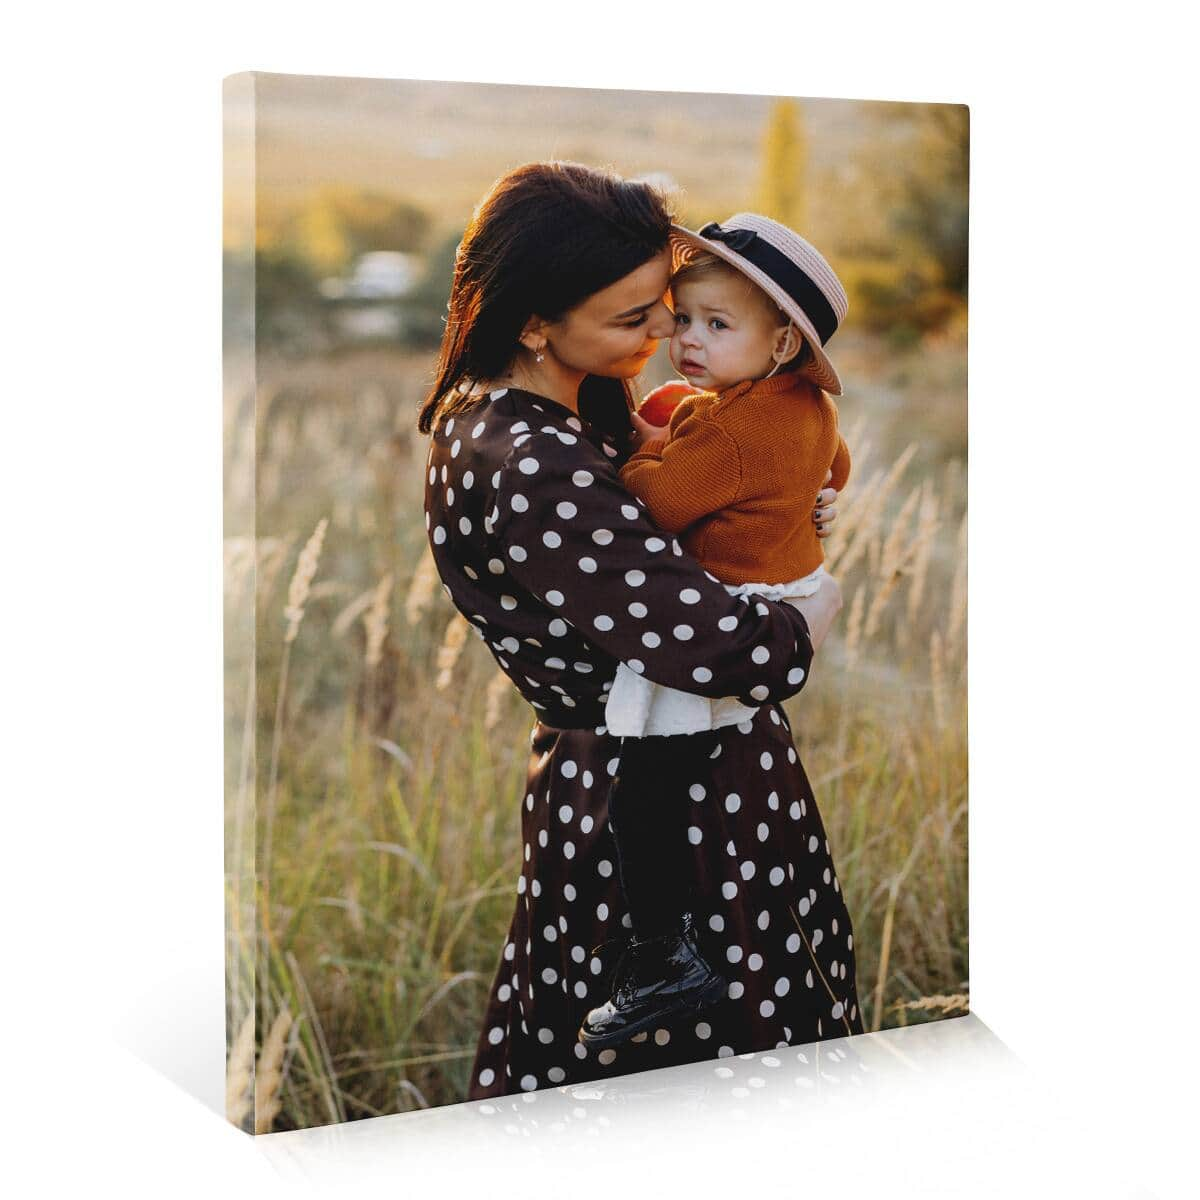 """CanvasChamp 16"""" x 20"""" Custom Canvas Prints for $18.50 Shipped"""